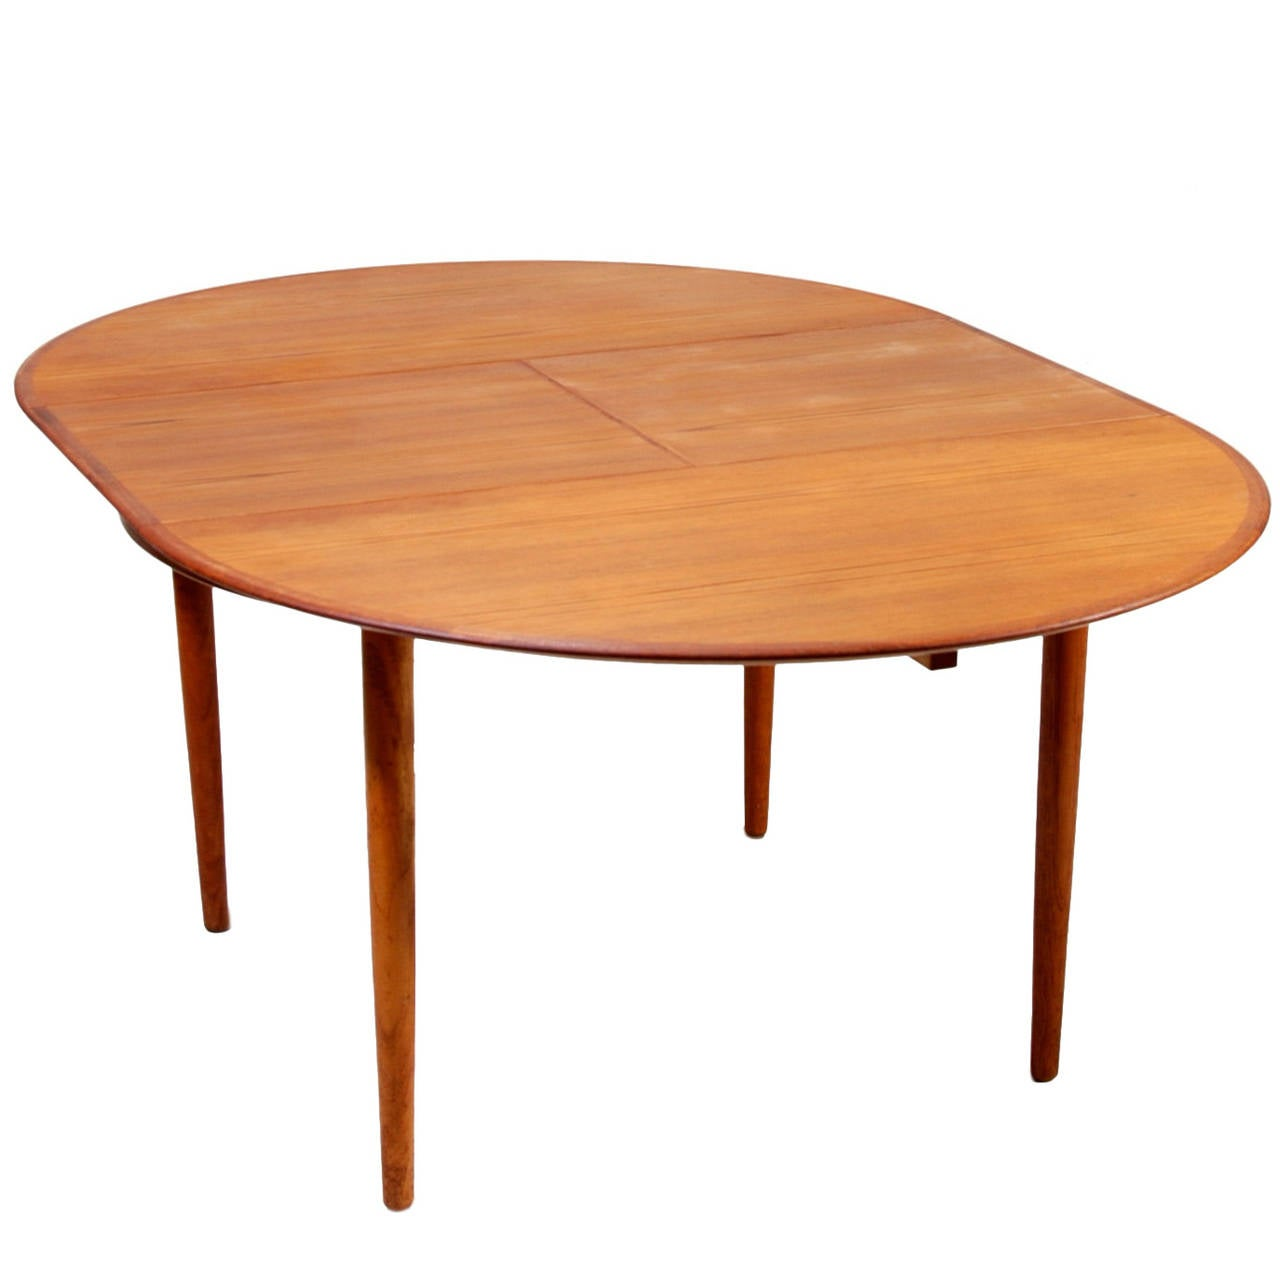 Round danish modern teak dining table by dyrlund at 1stdibs for Modern round dining table